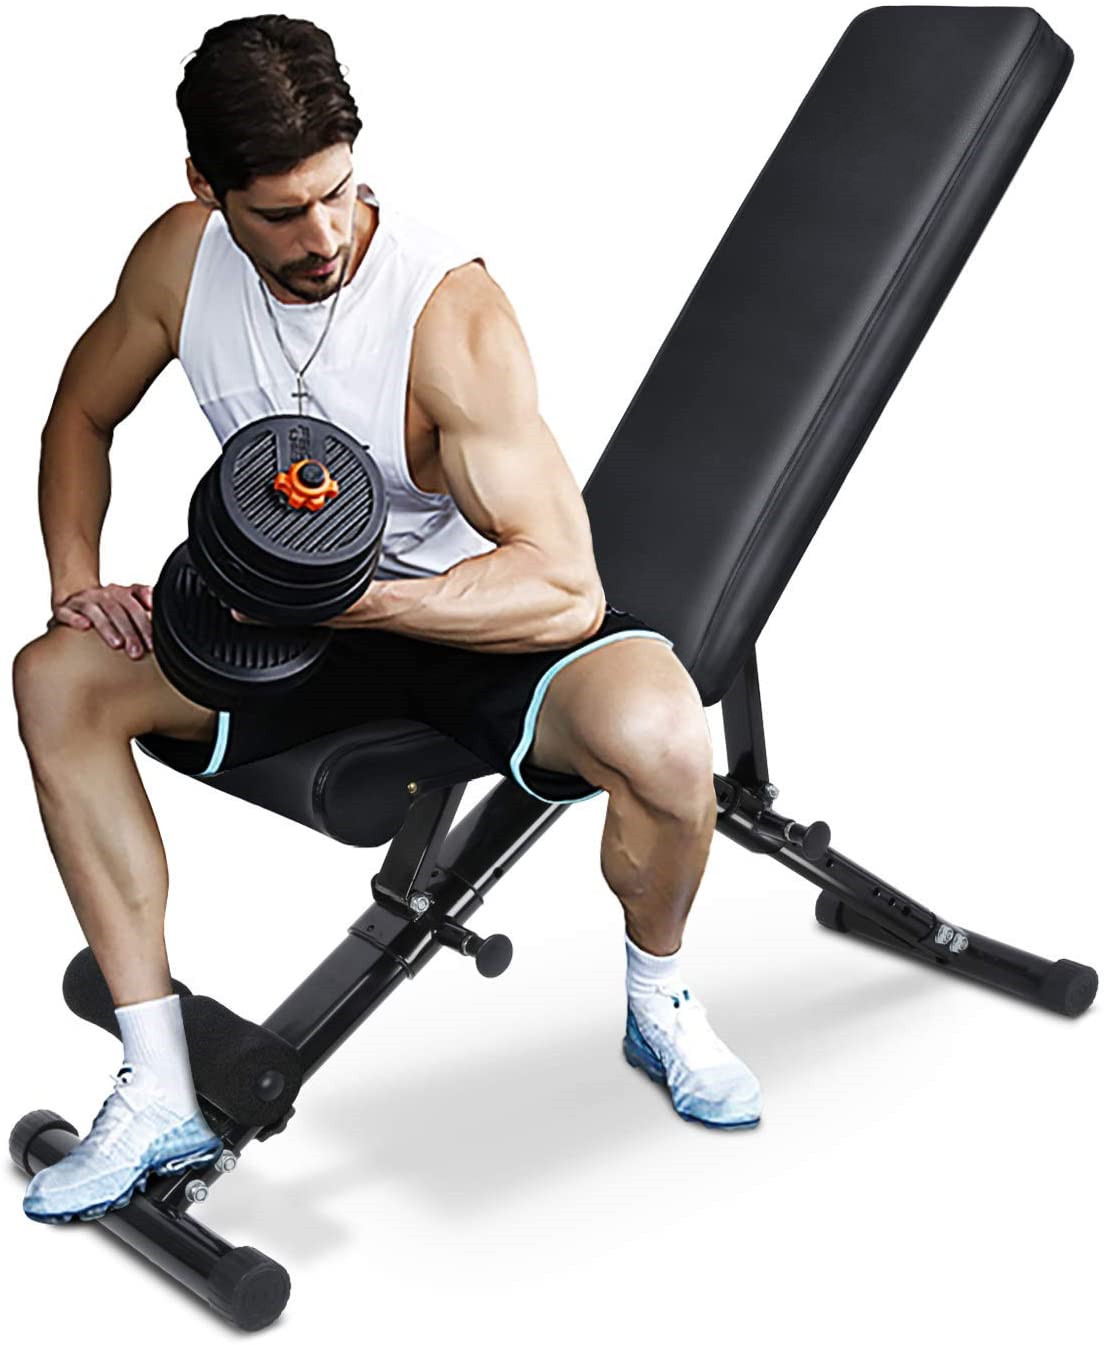 Sport Adjustable Folding Weight Bench& Strength Training Bench